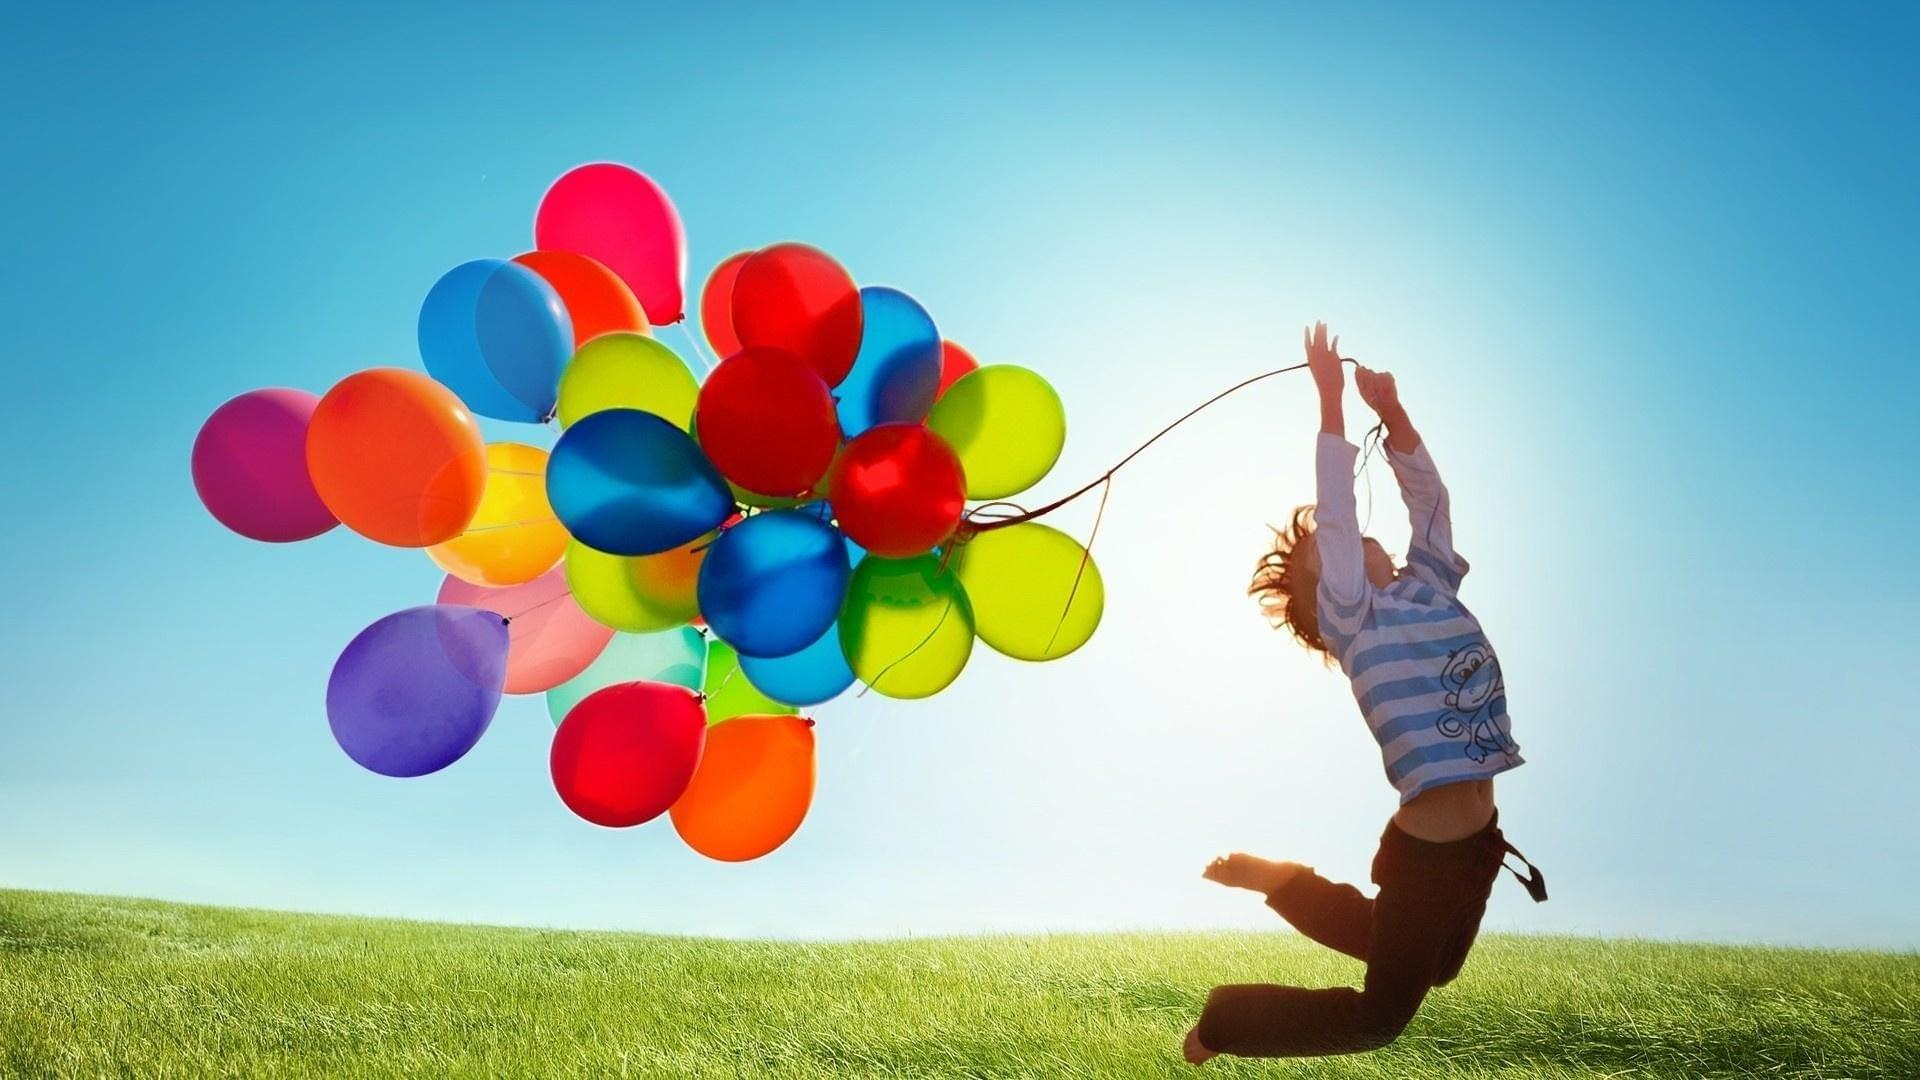 boy-flying-with-balloons-1920x1080